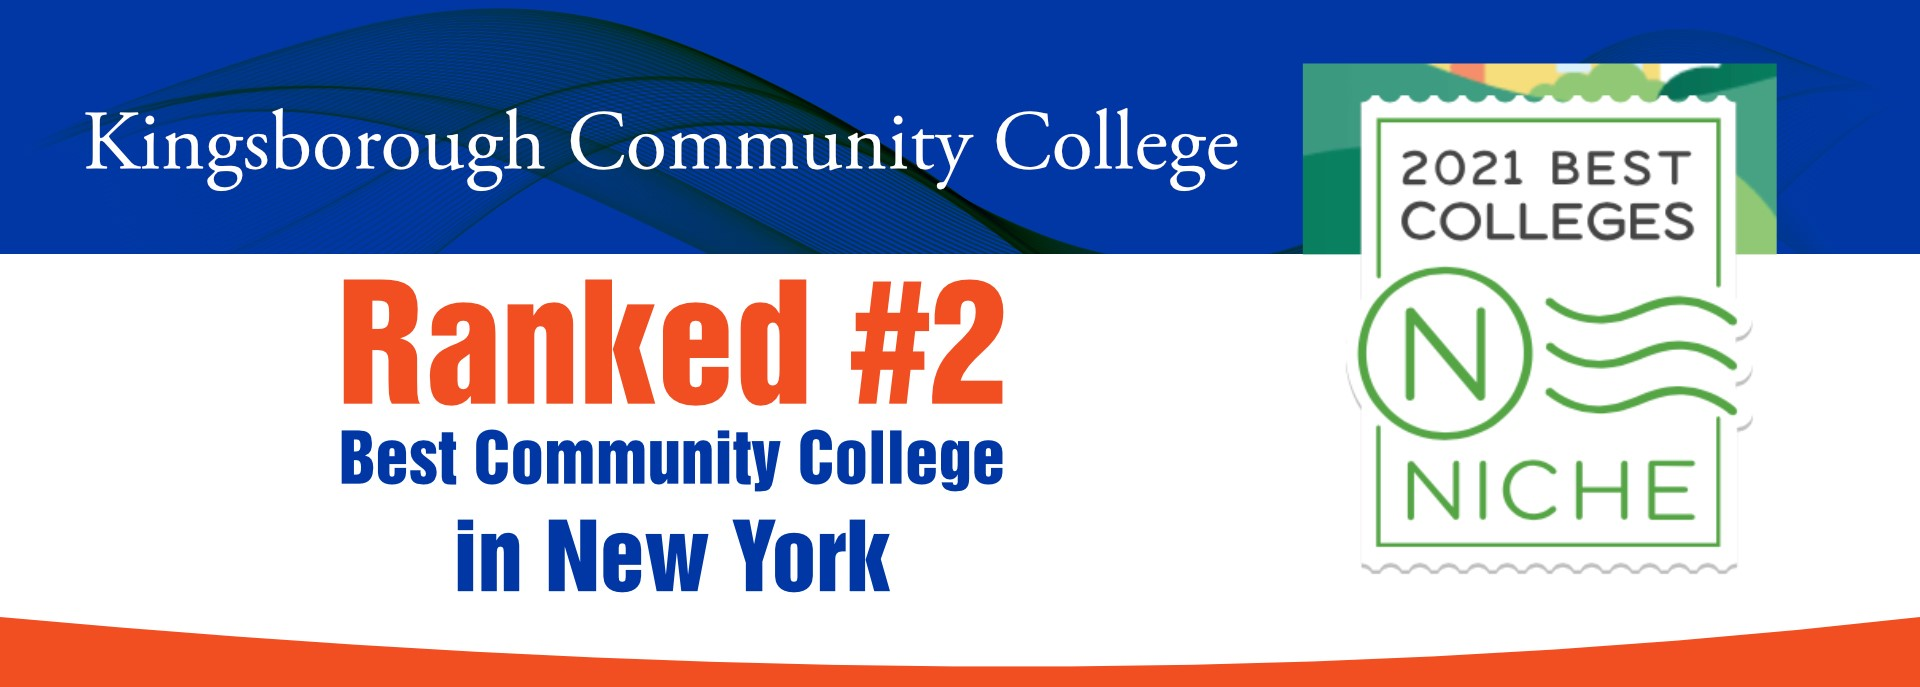 KCC Ranked #2 Best Community College in NYC